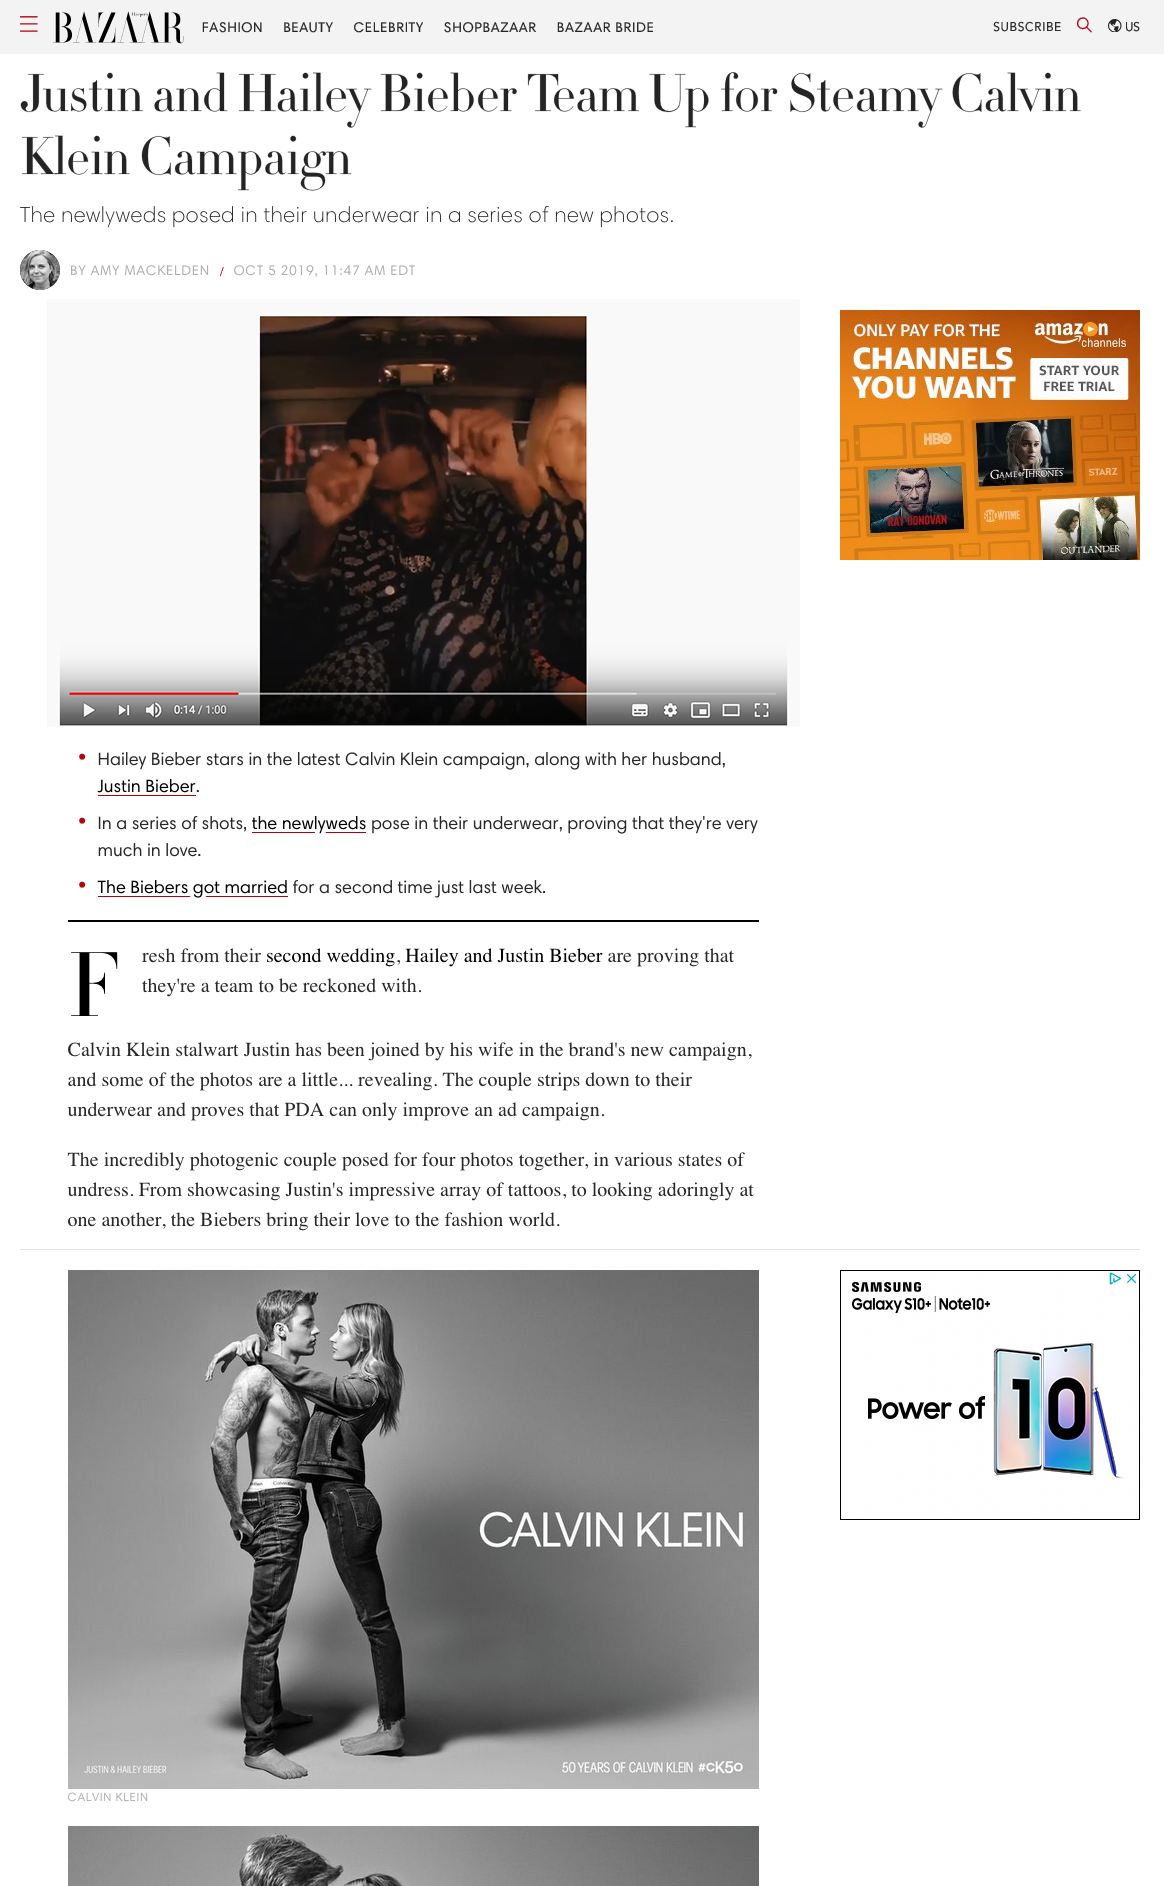 HARPERS BAZZAAR 2019-10-13 at 10.16.07 AM.png